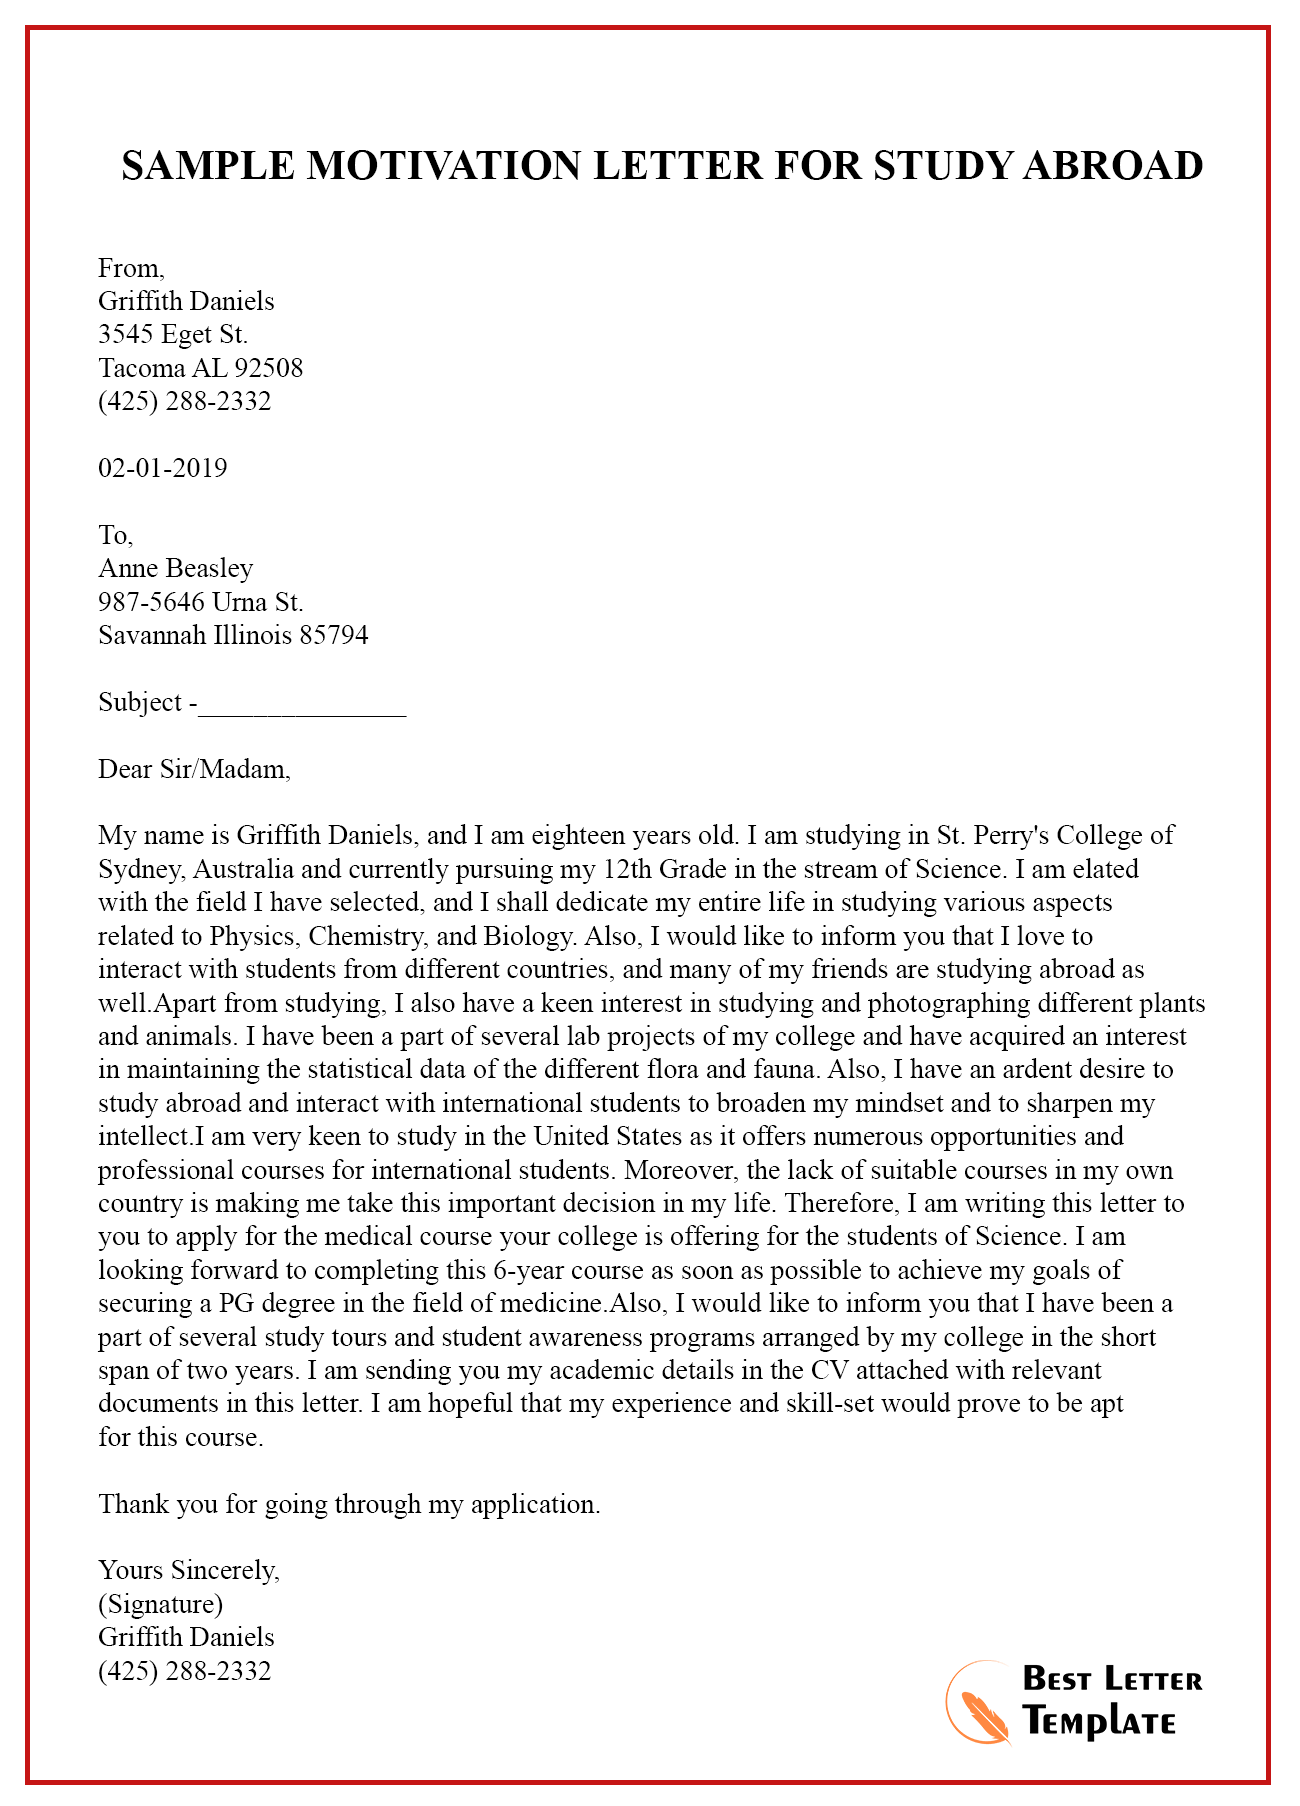 Sample Motivation Letter Template for Study Abroad - PDF ...